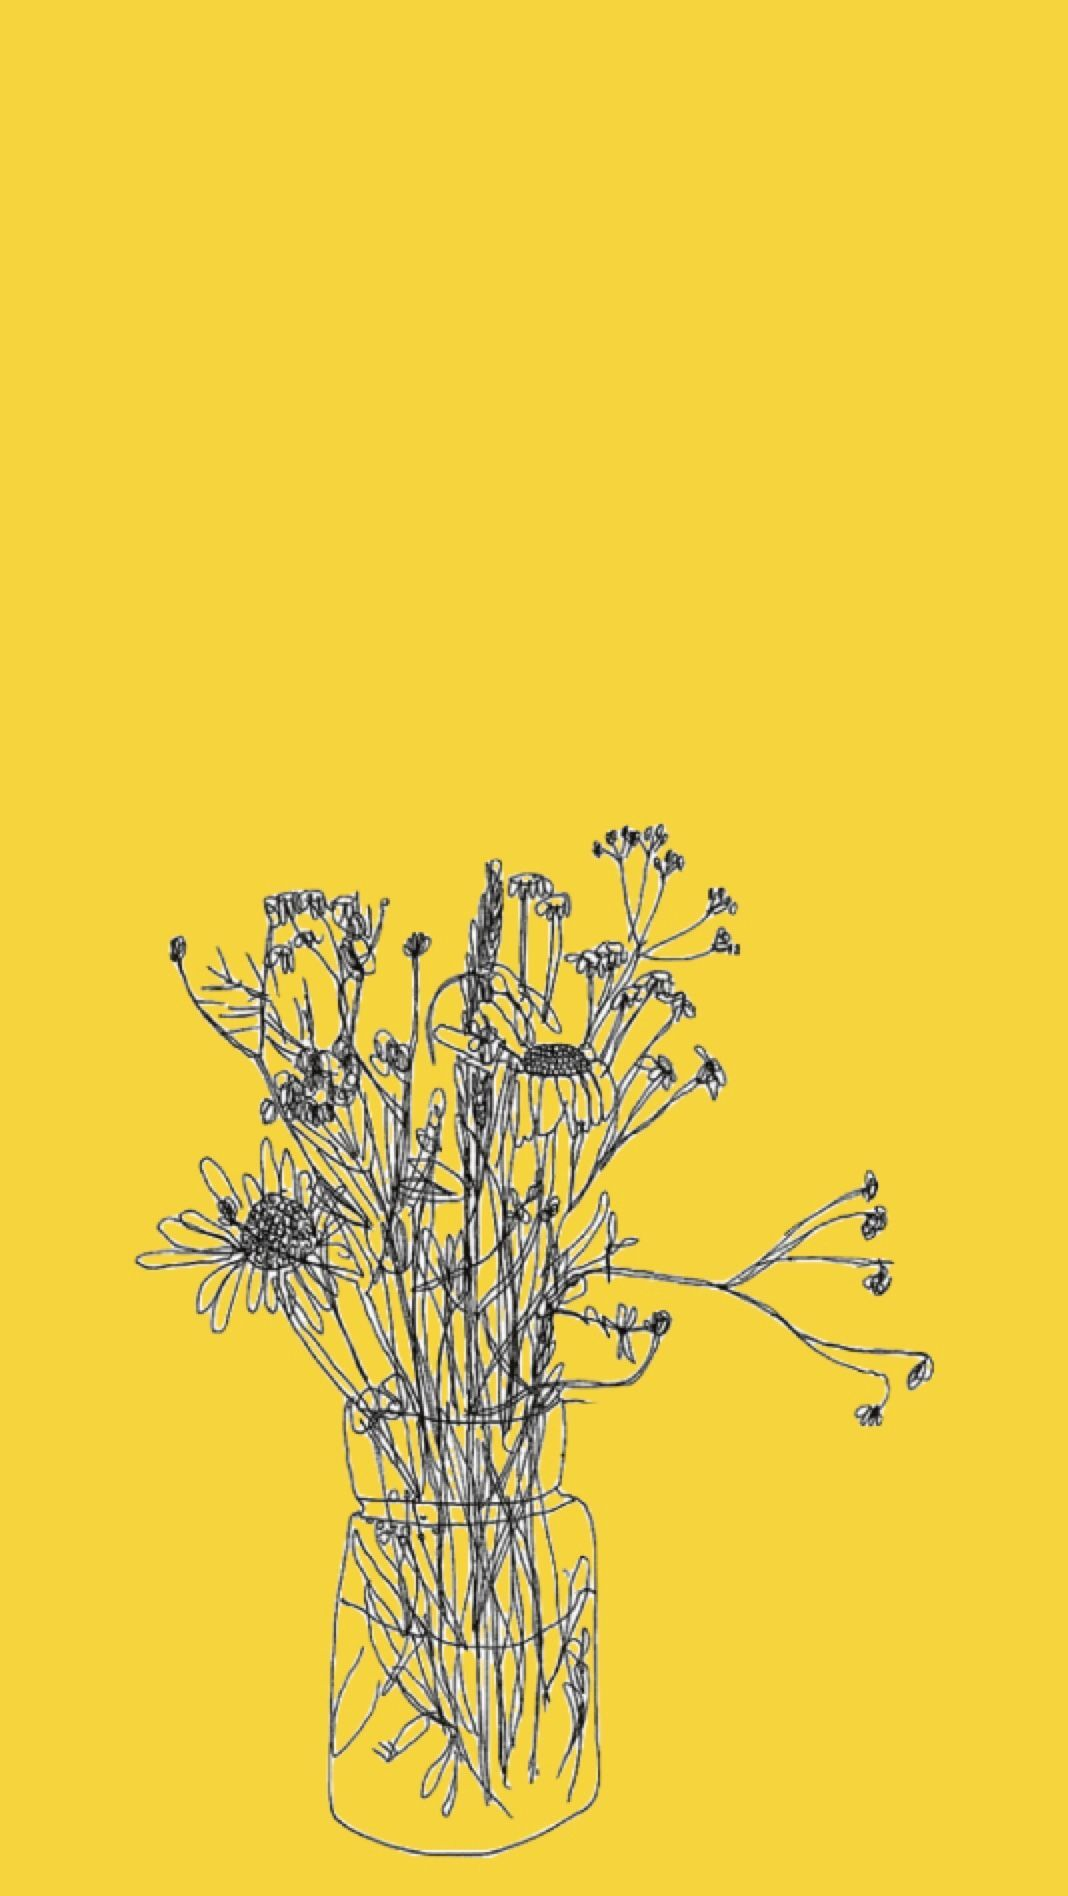 Yellow Aesthetic Wallpapers Top Free Yellow Aesthetic